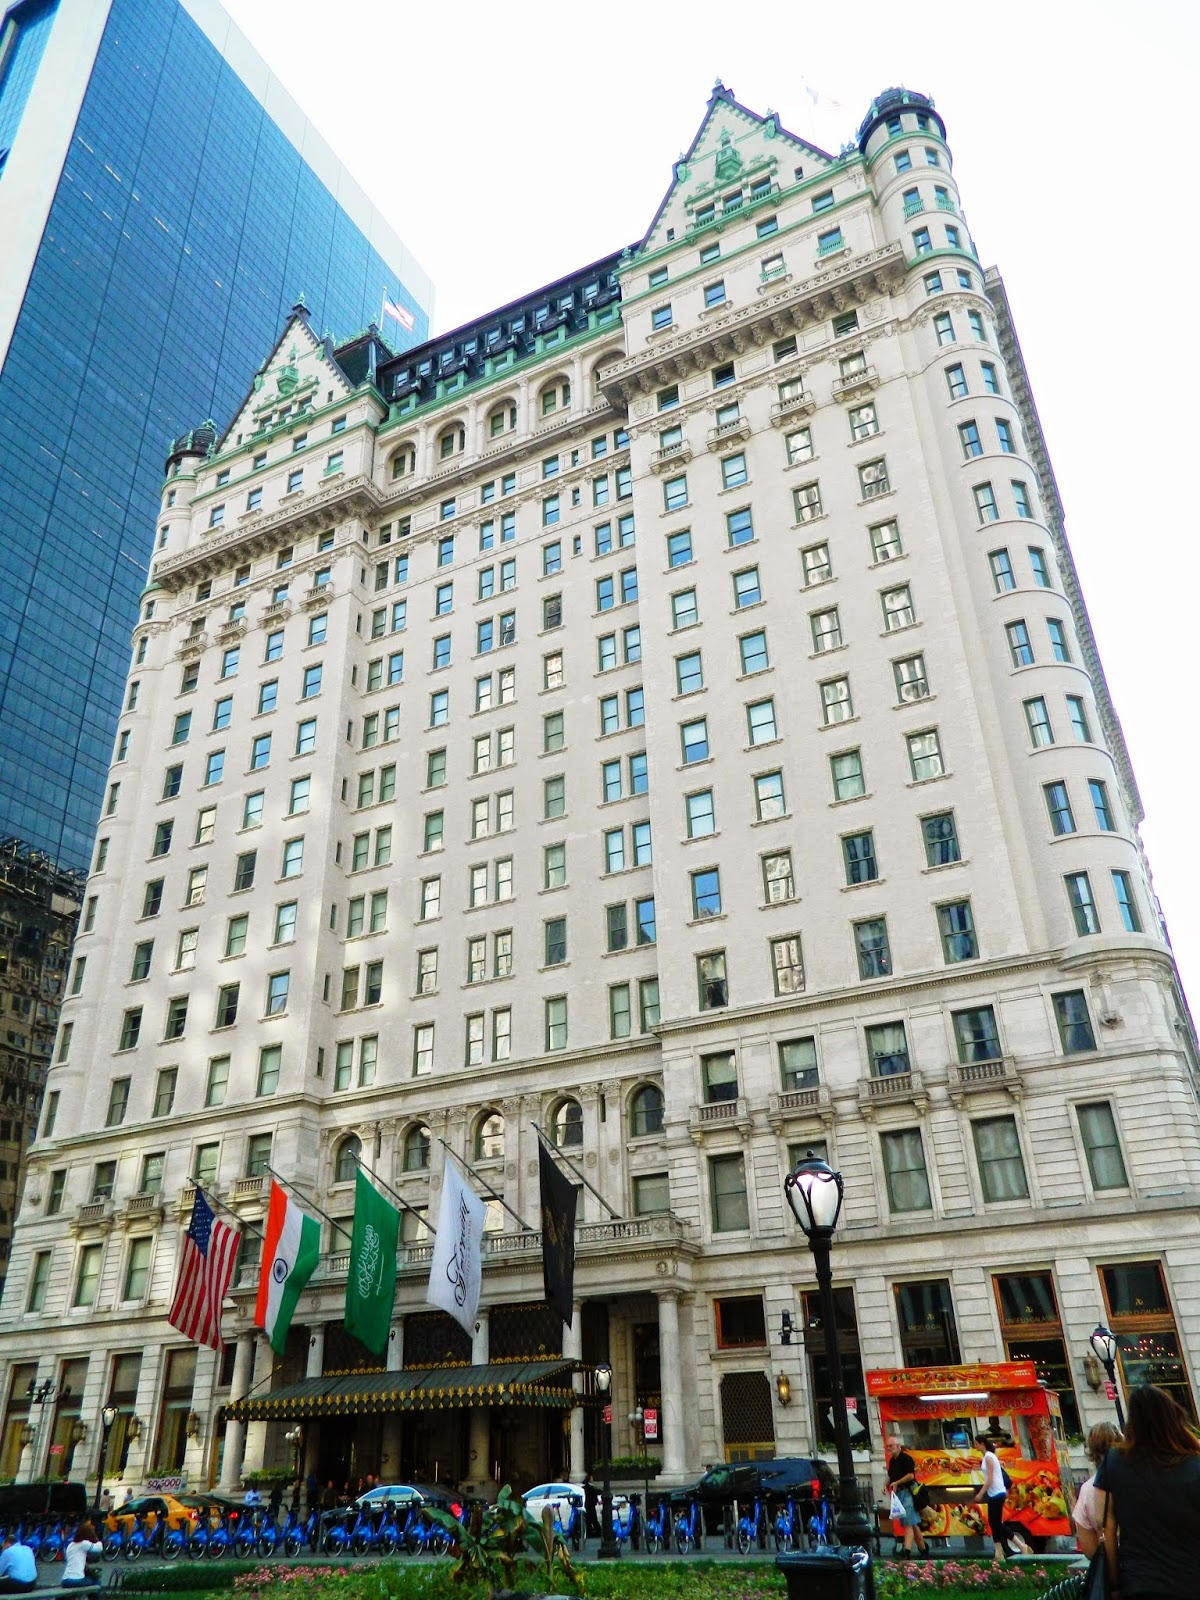 new york city 5th avenue plaza hotel flags day architecture